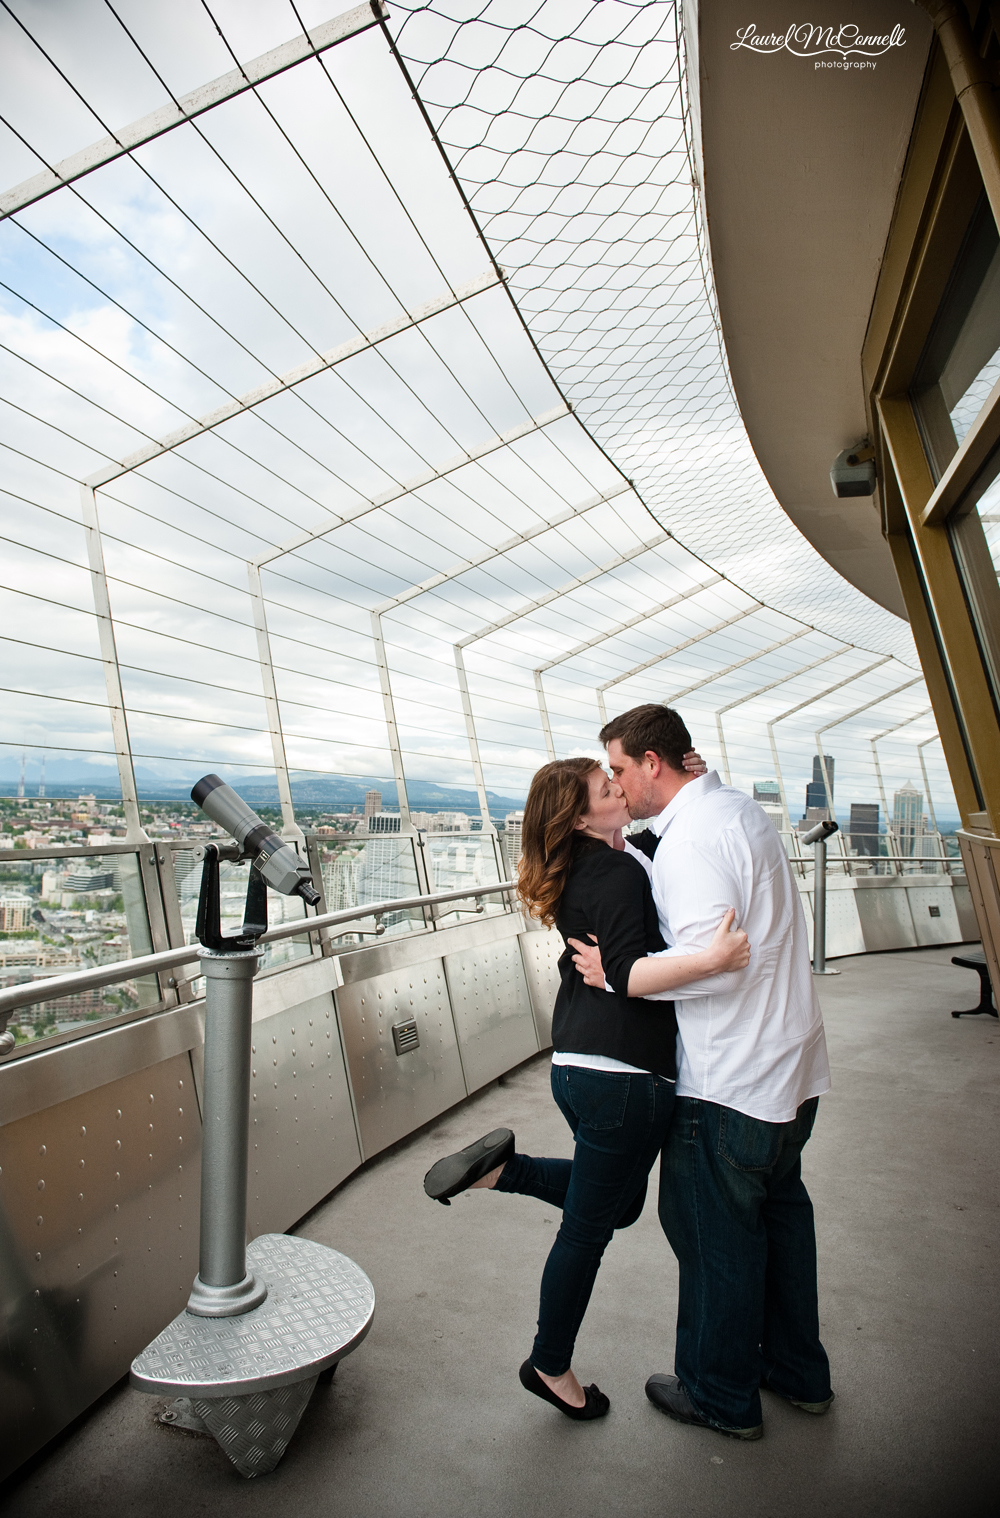 a dramatic kiss overlooks the seattle skyline atop the space needle after he proposed